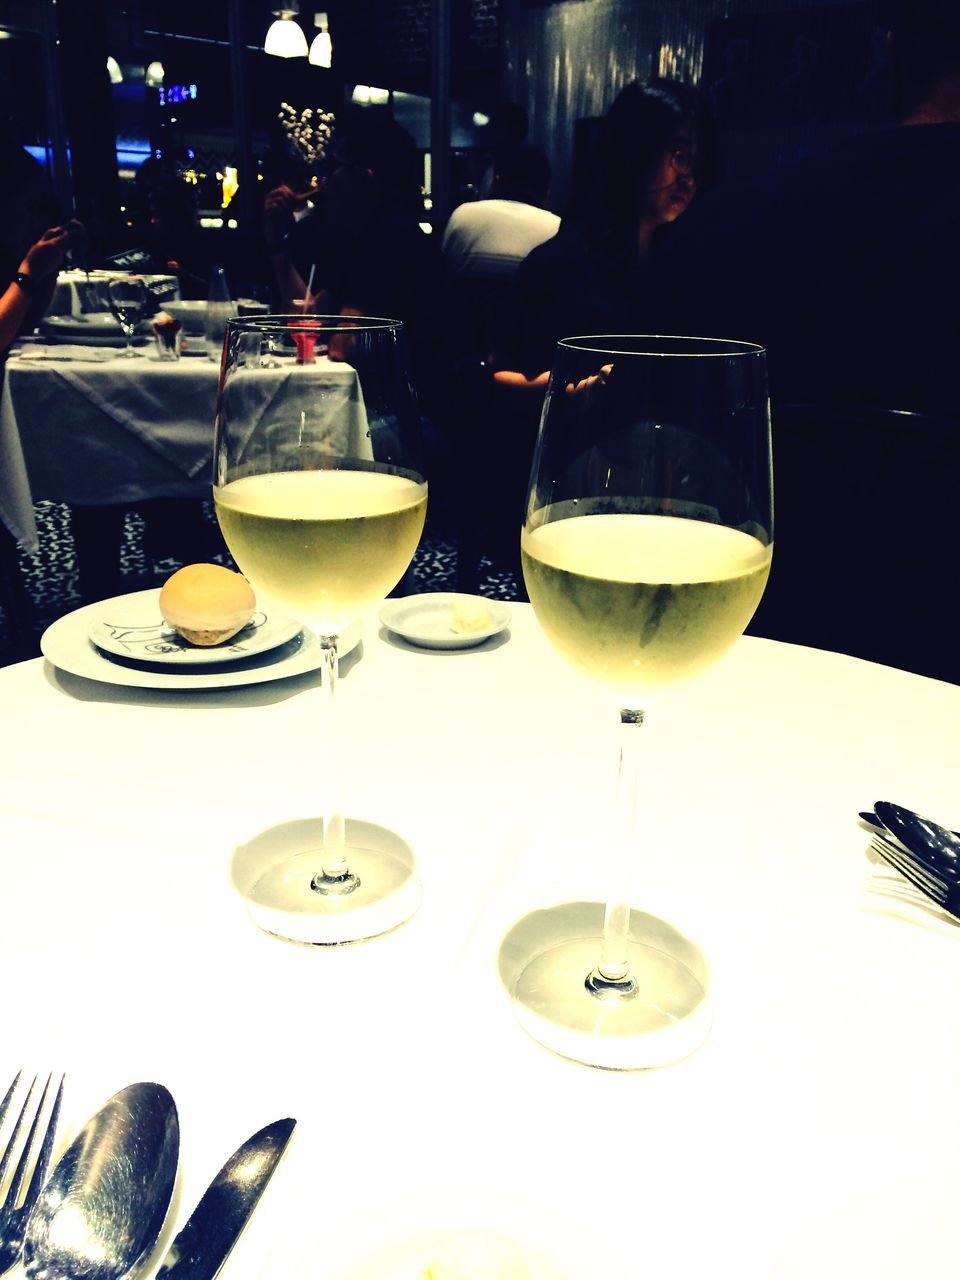 table, food and drink, wineglass, restaurant, wine, drink, refreshment, alcohol, drinking glass, plate, real people, indoors, two people, sitting, freshness, men, food, close-up, day, people